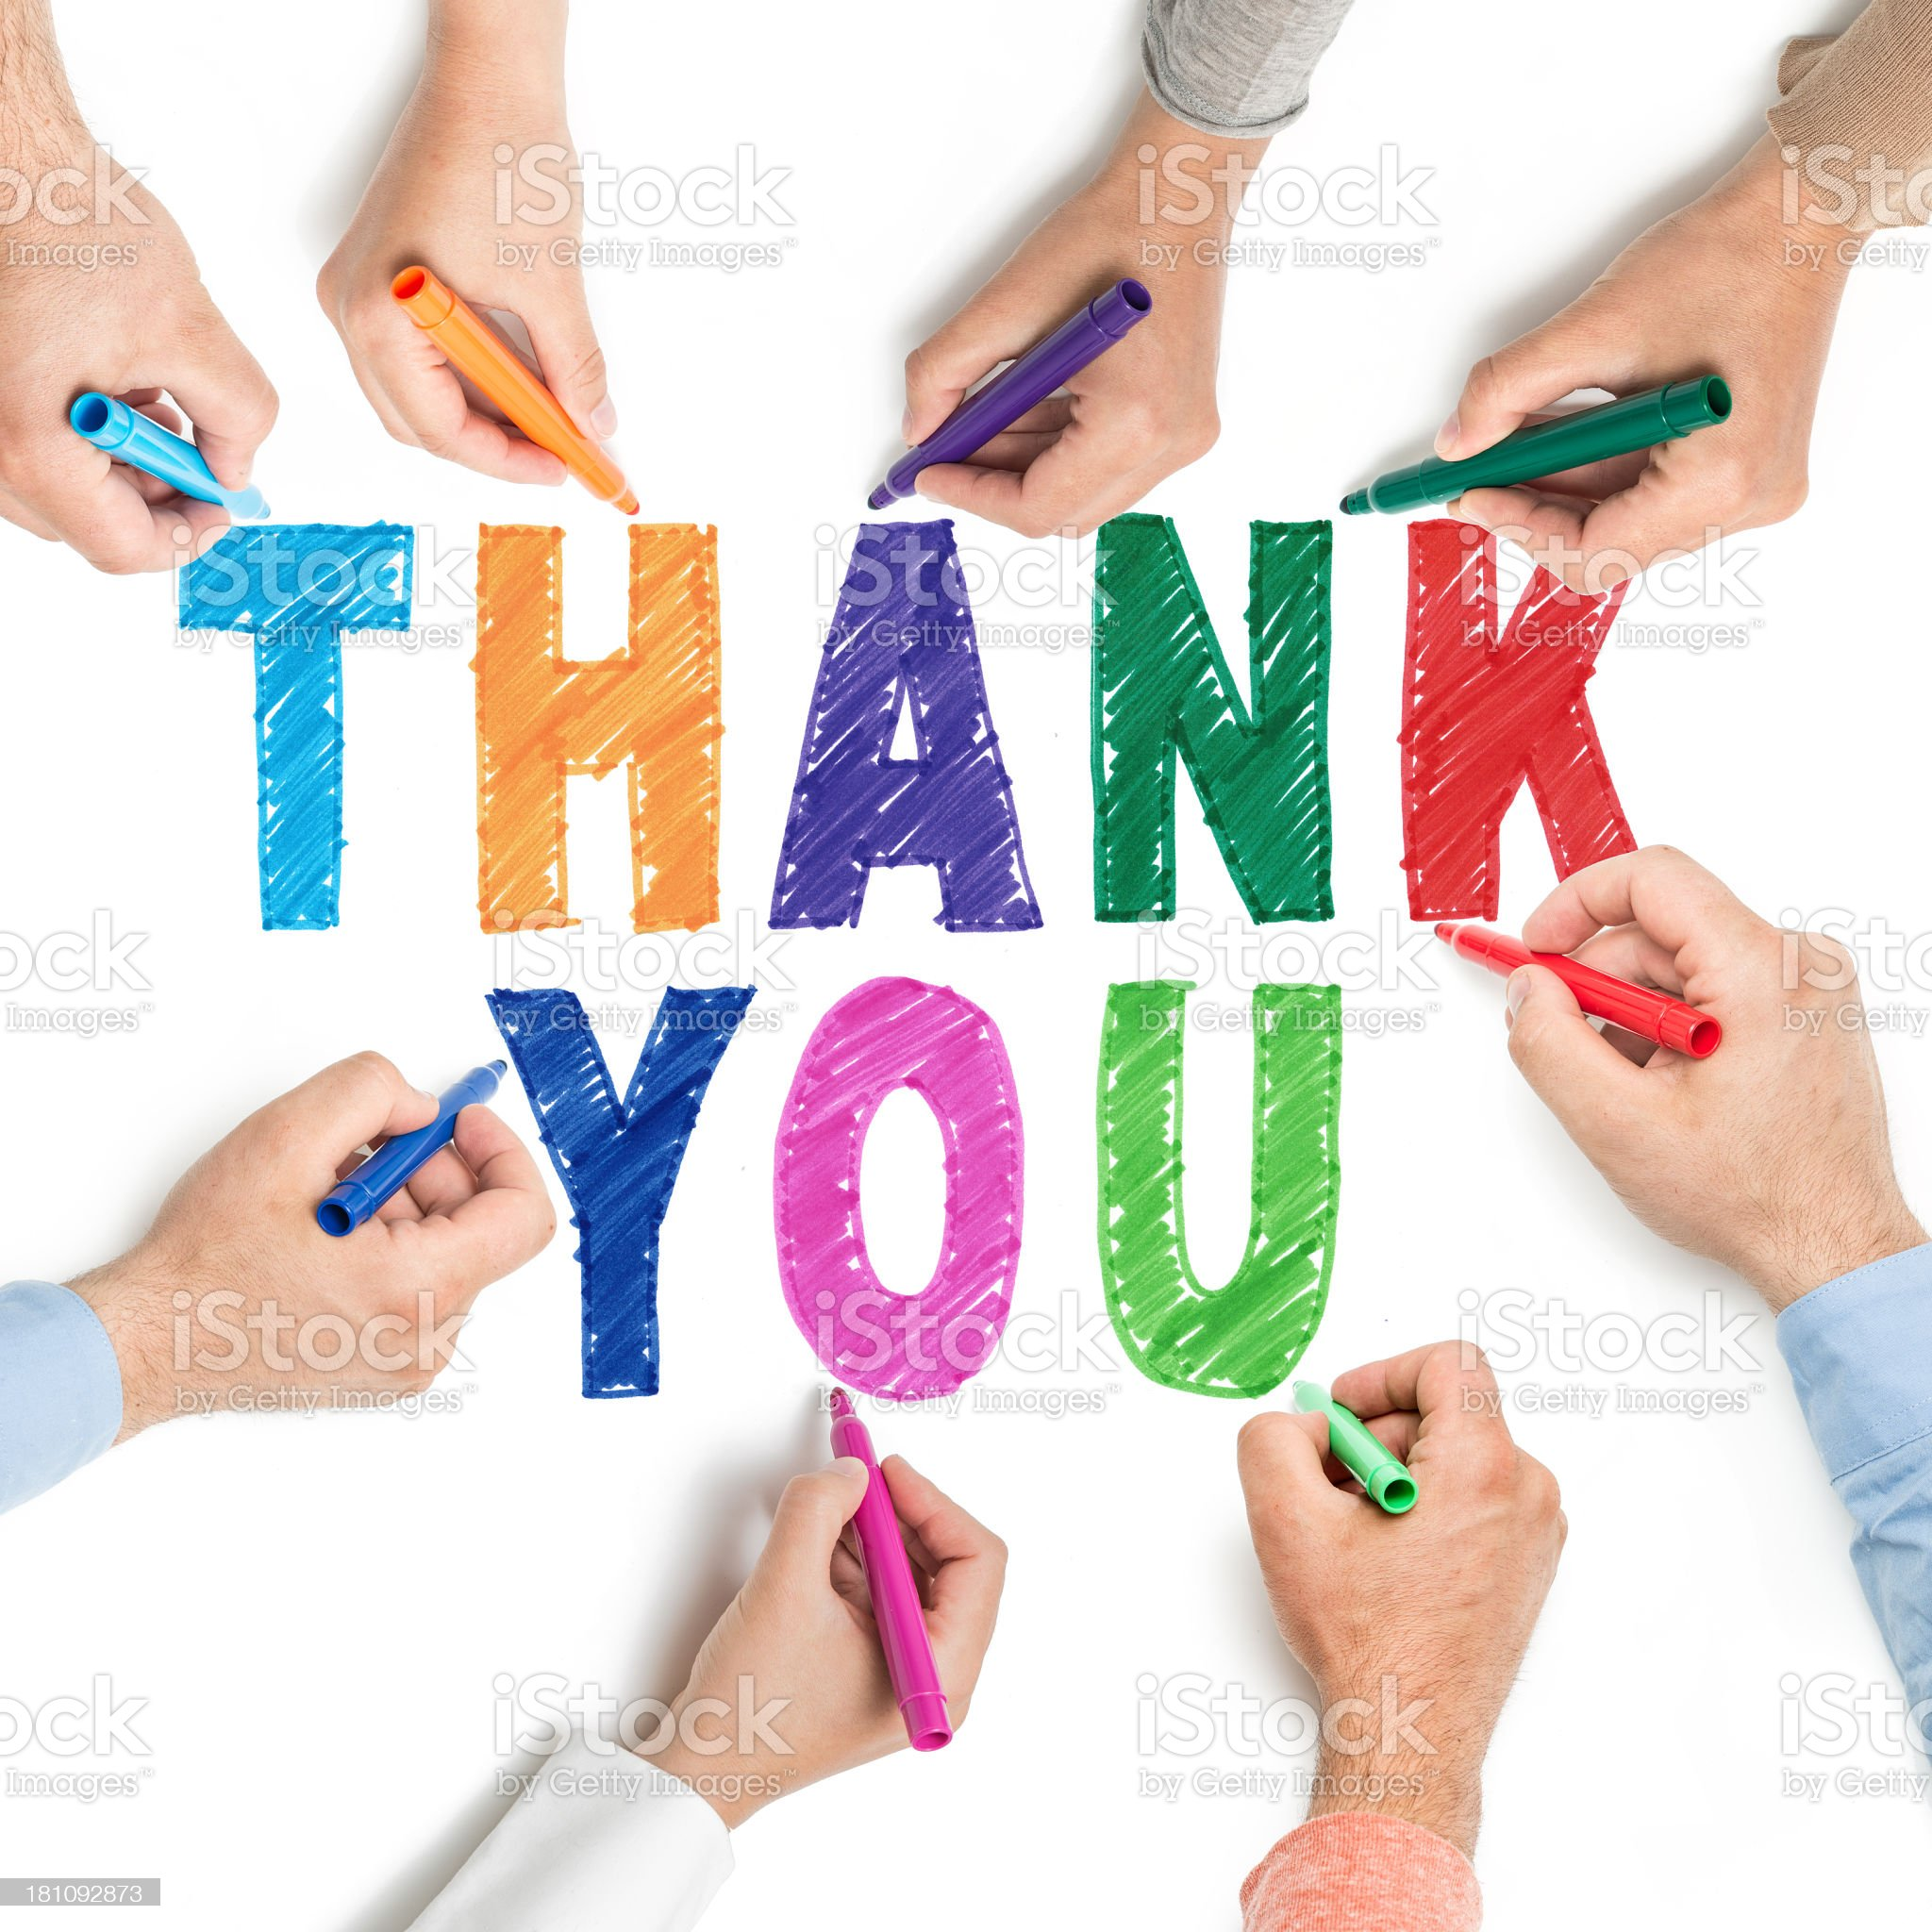 Hands coloring in thank you on whiteboard. royalty-free stock photo